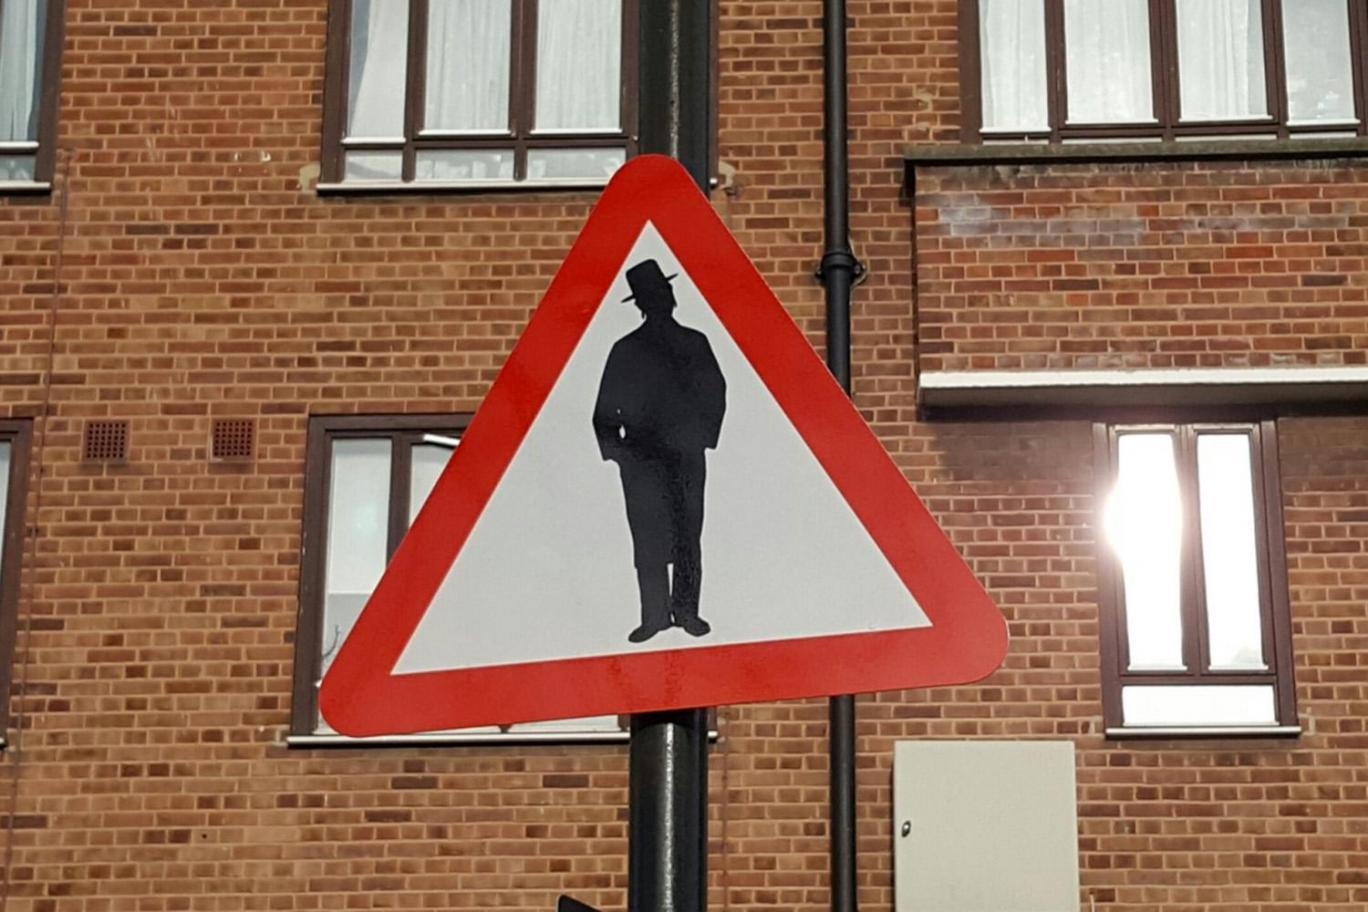 'Beware of Jews' sign near London synagogue reported to police